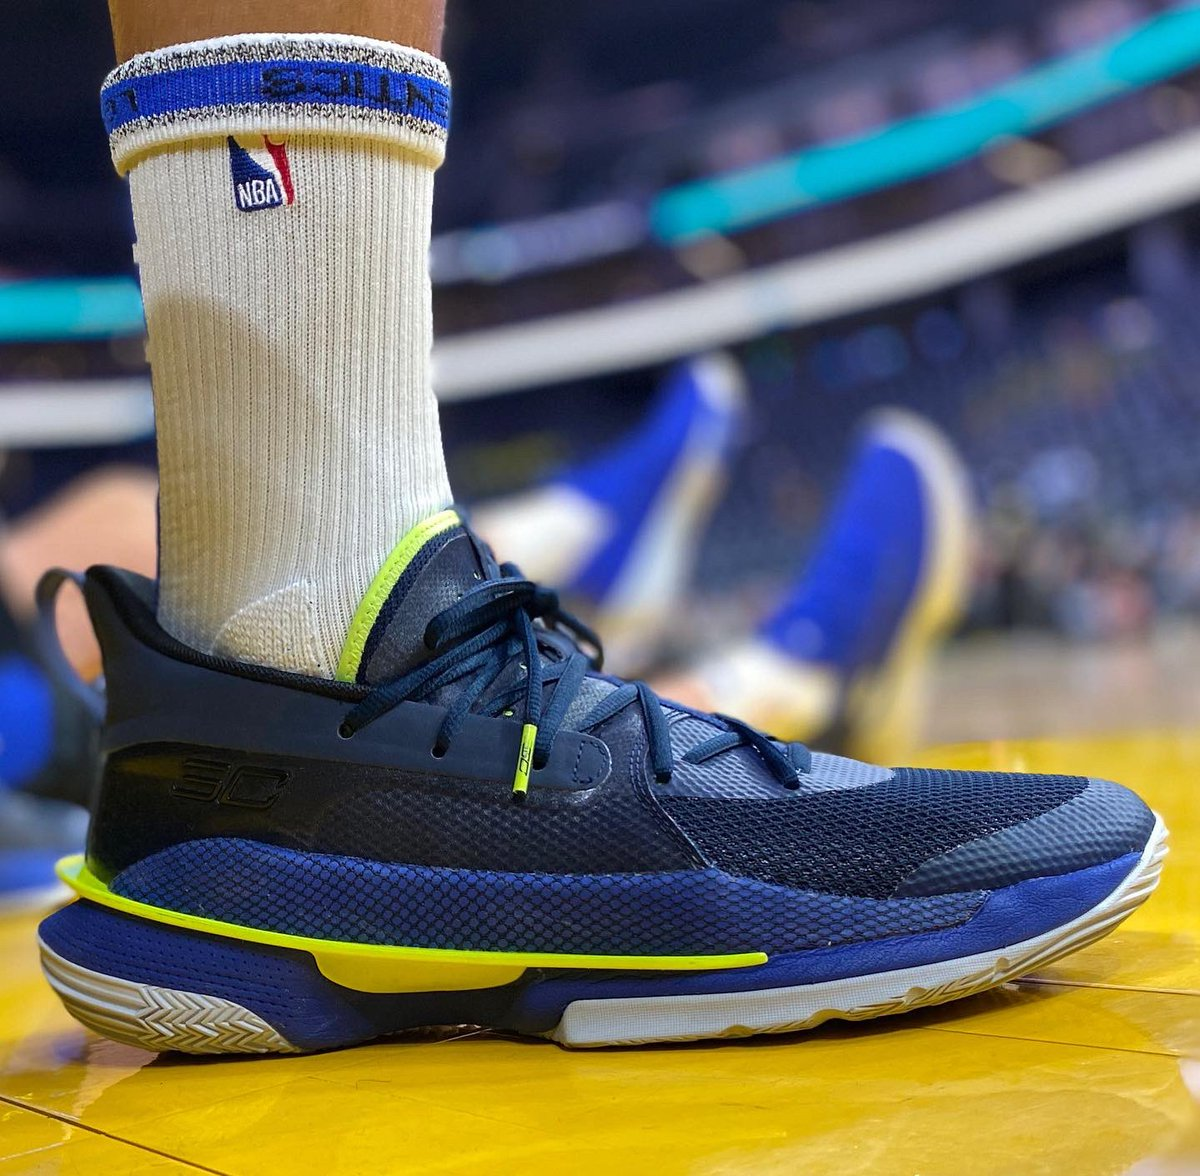 Steph Curry in the UA Curry 7! #NBAKicks